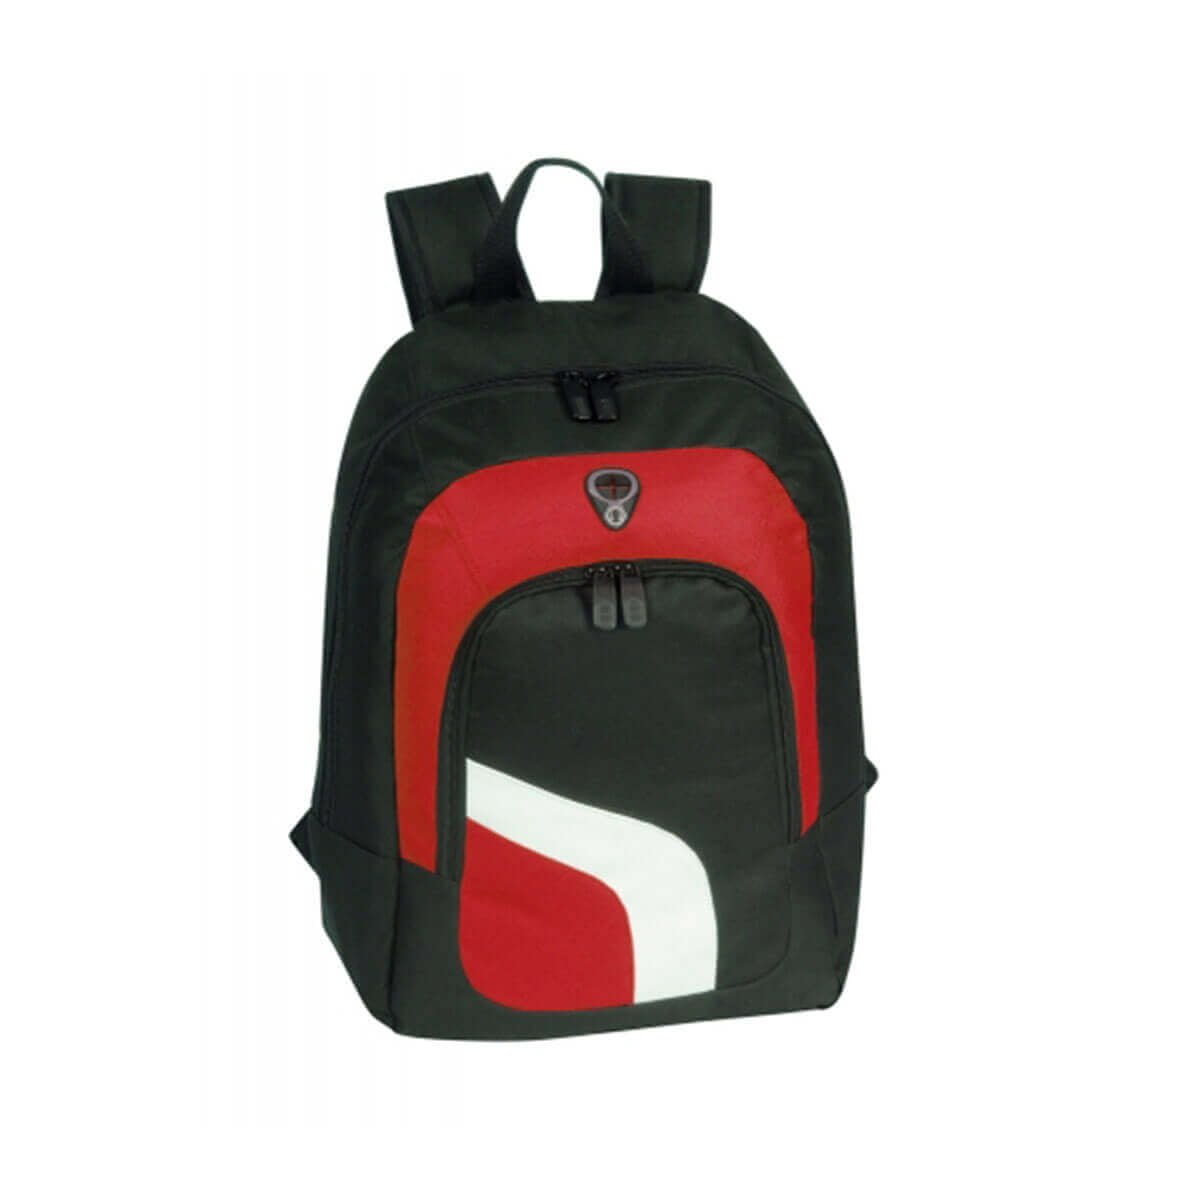 Backpack-Black / White / Red